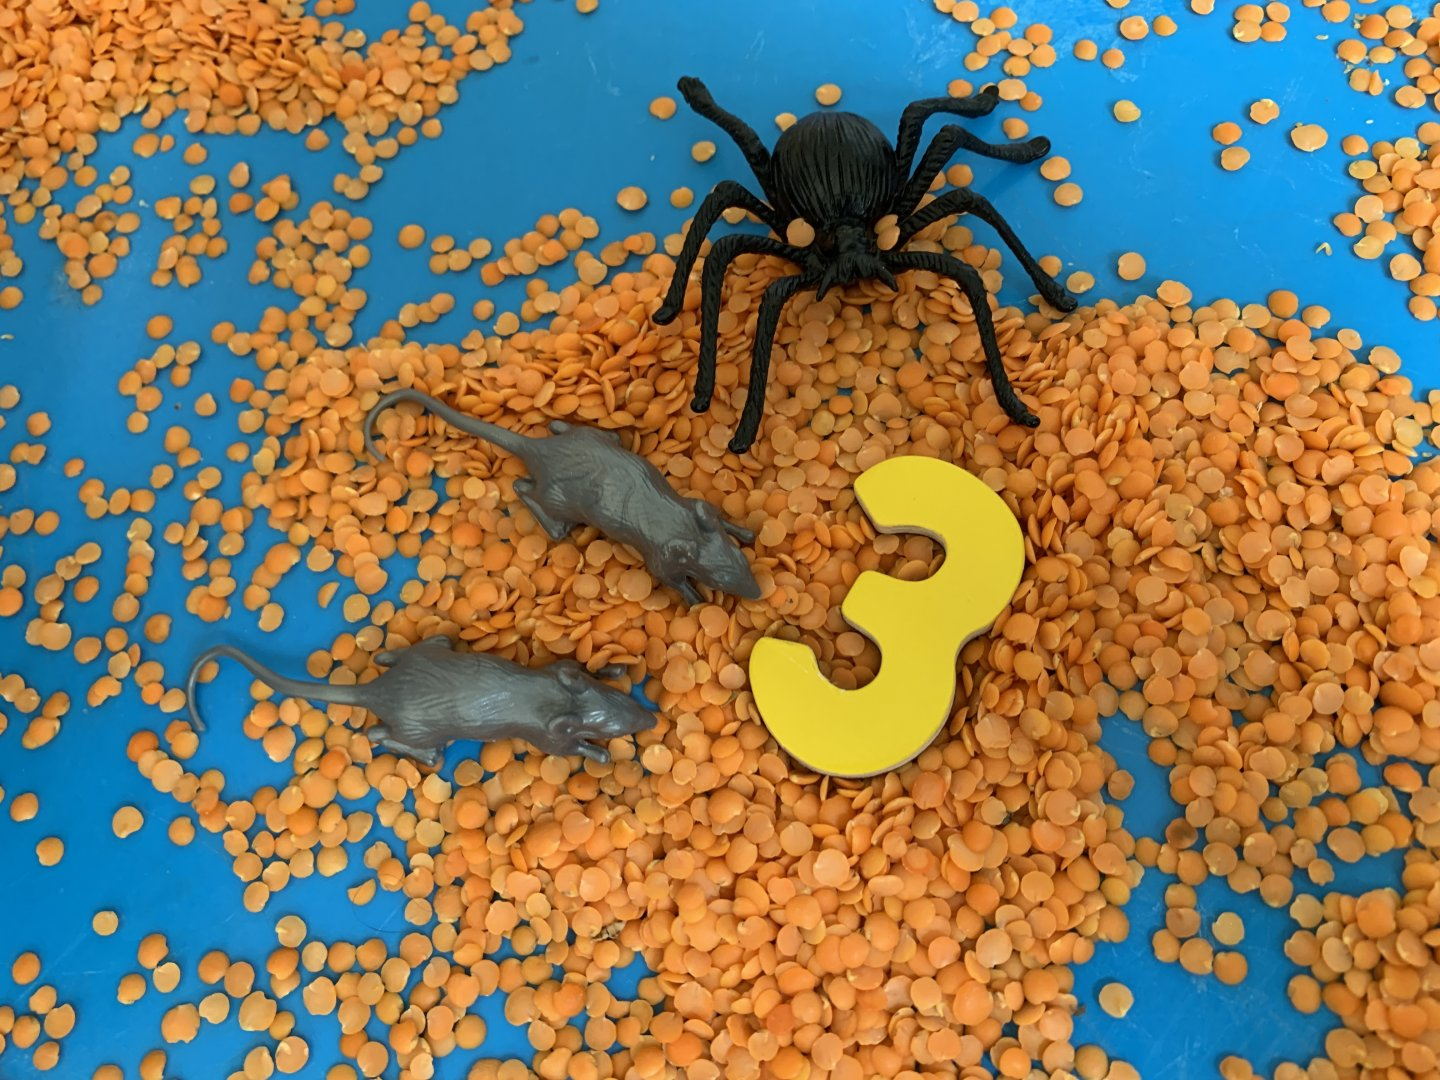 Halloween sensory number tuff spot - a wooden number three on a bed of red split lentils, surrounded by two plastic rats and a plastic spider.